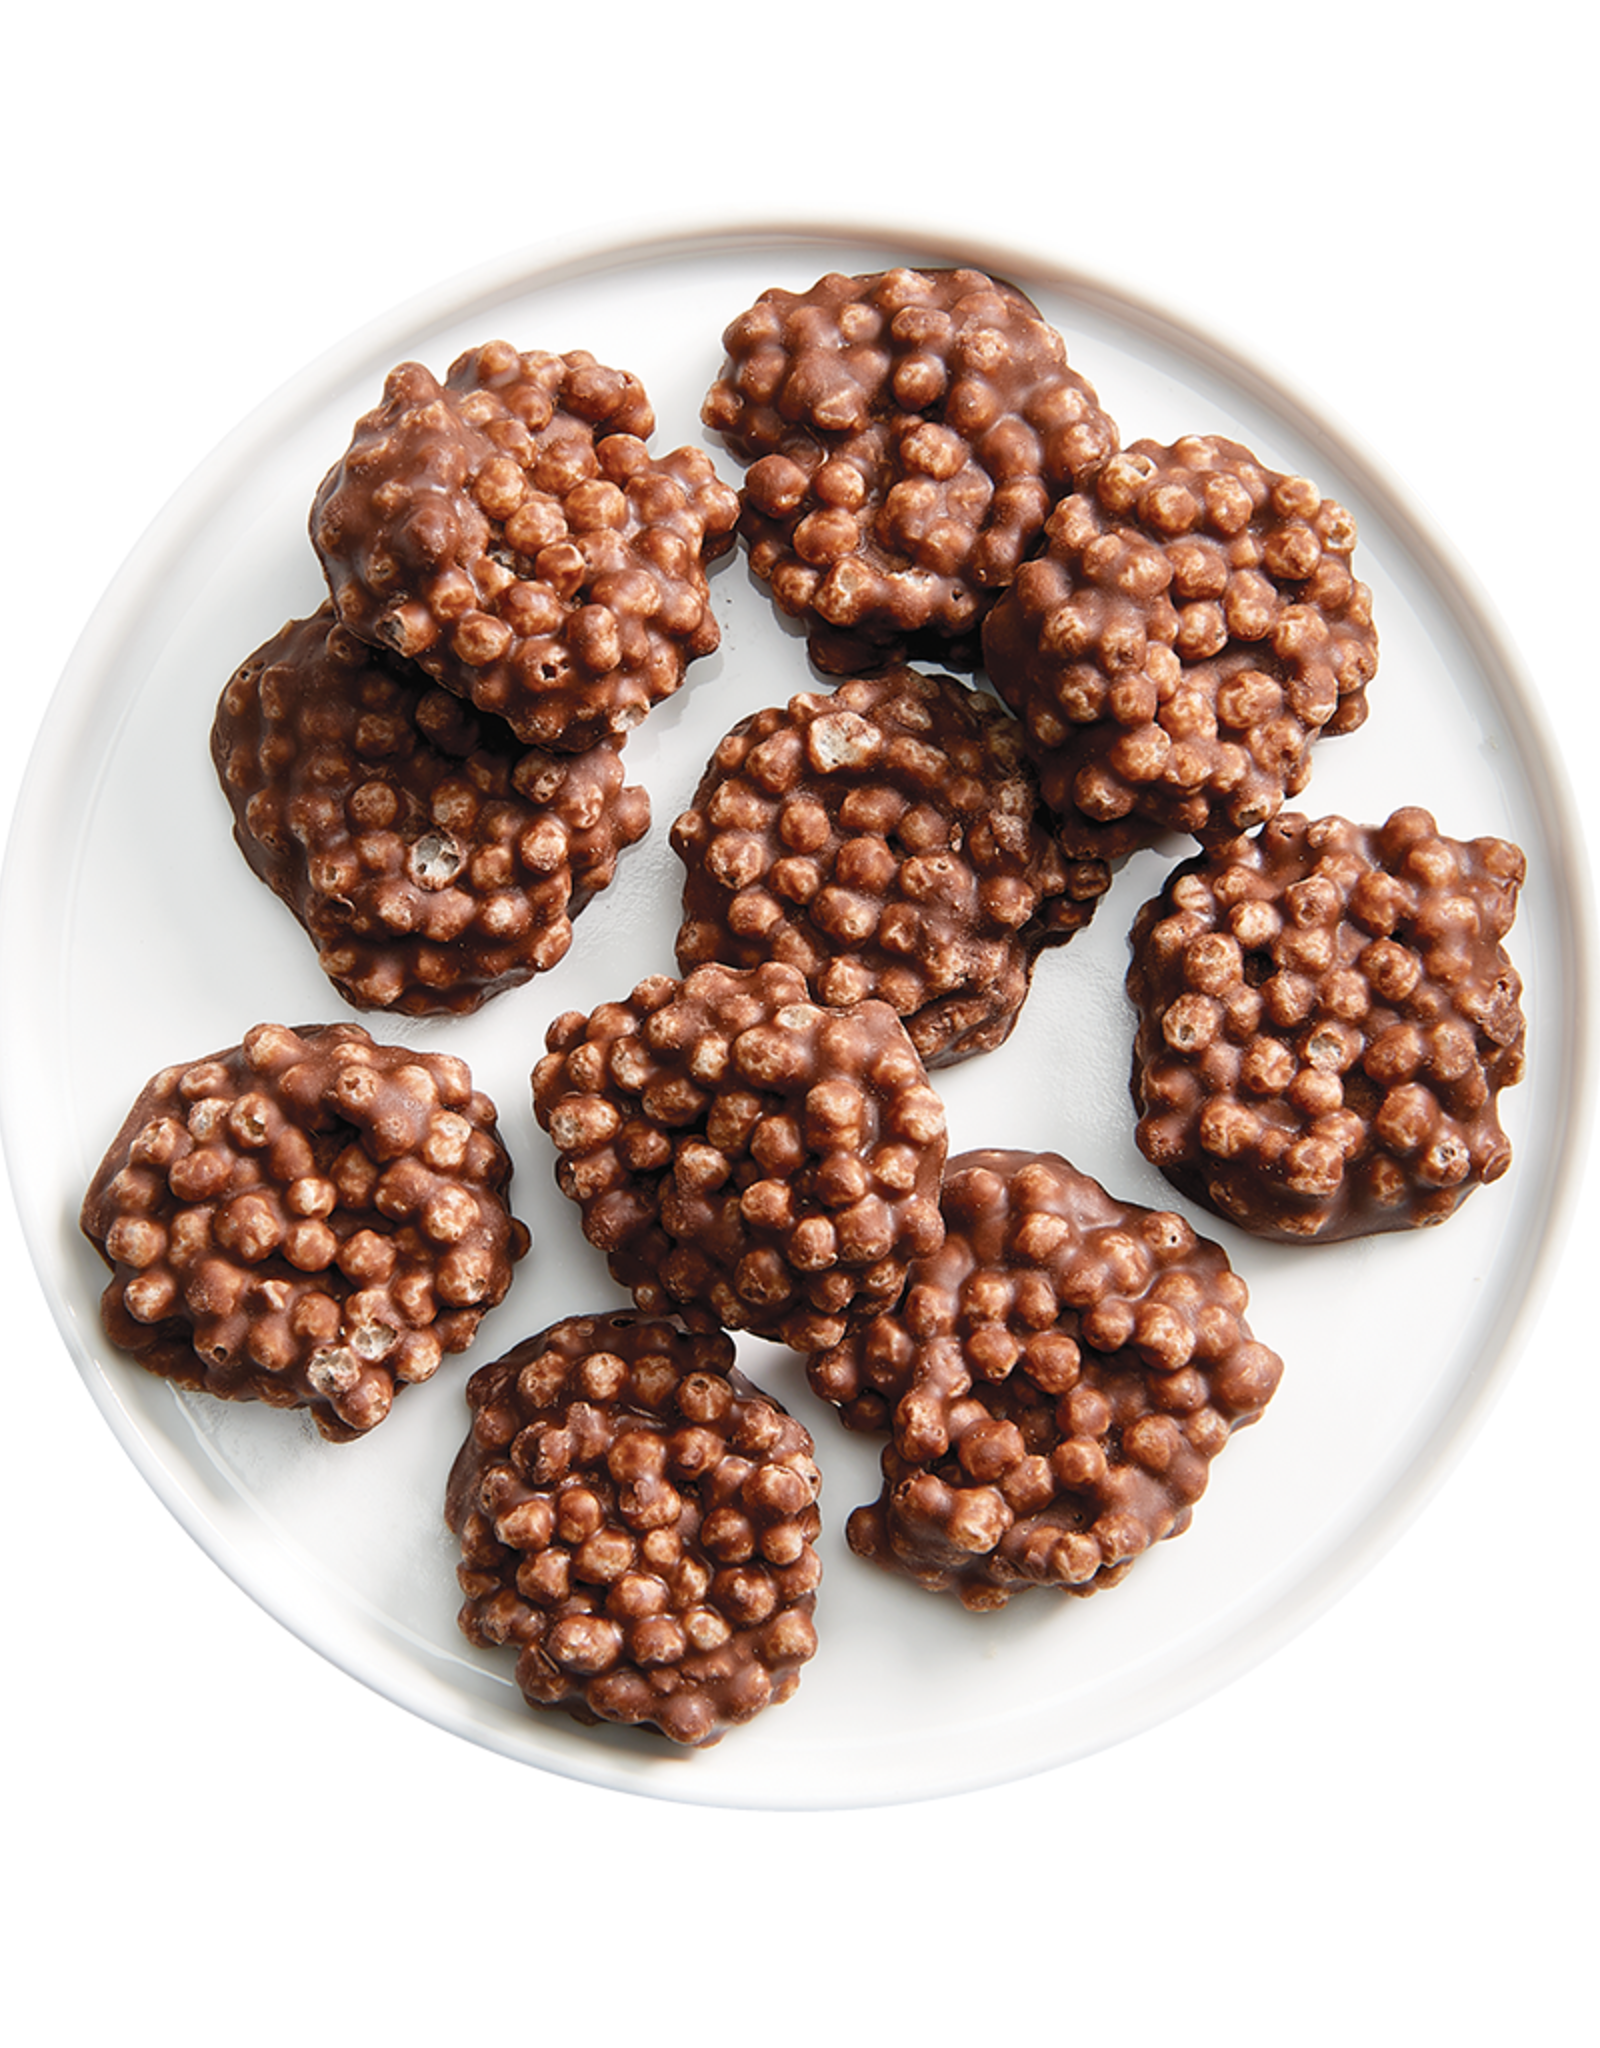 Ideal Protein Salted Caramel Chocolate Clusters